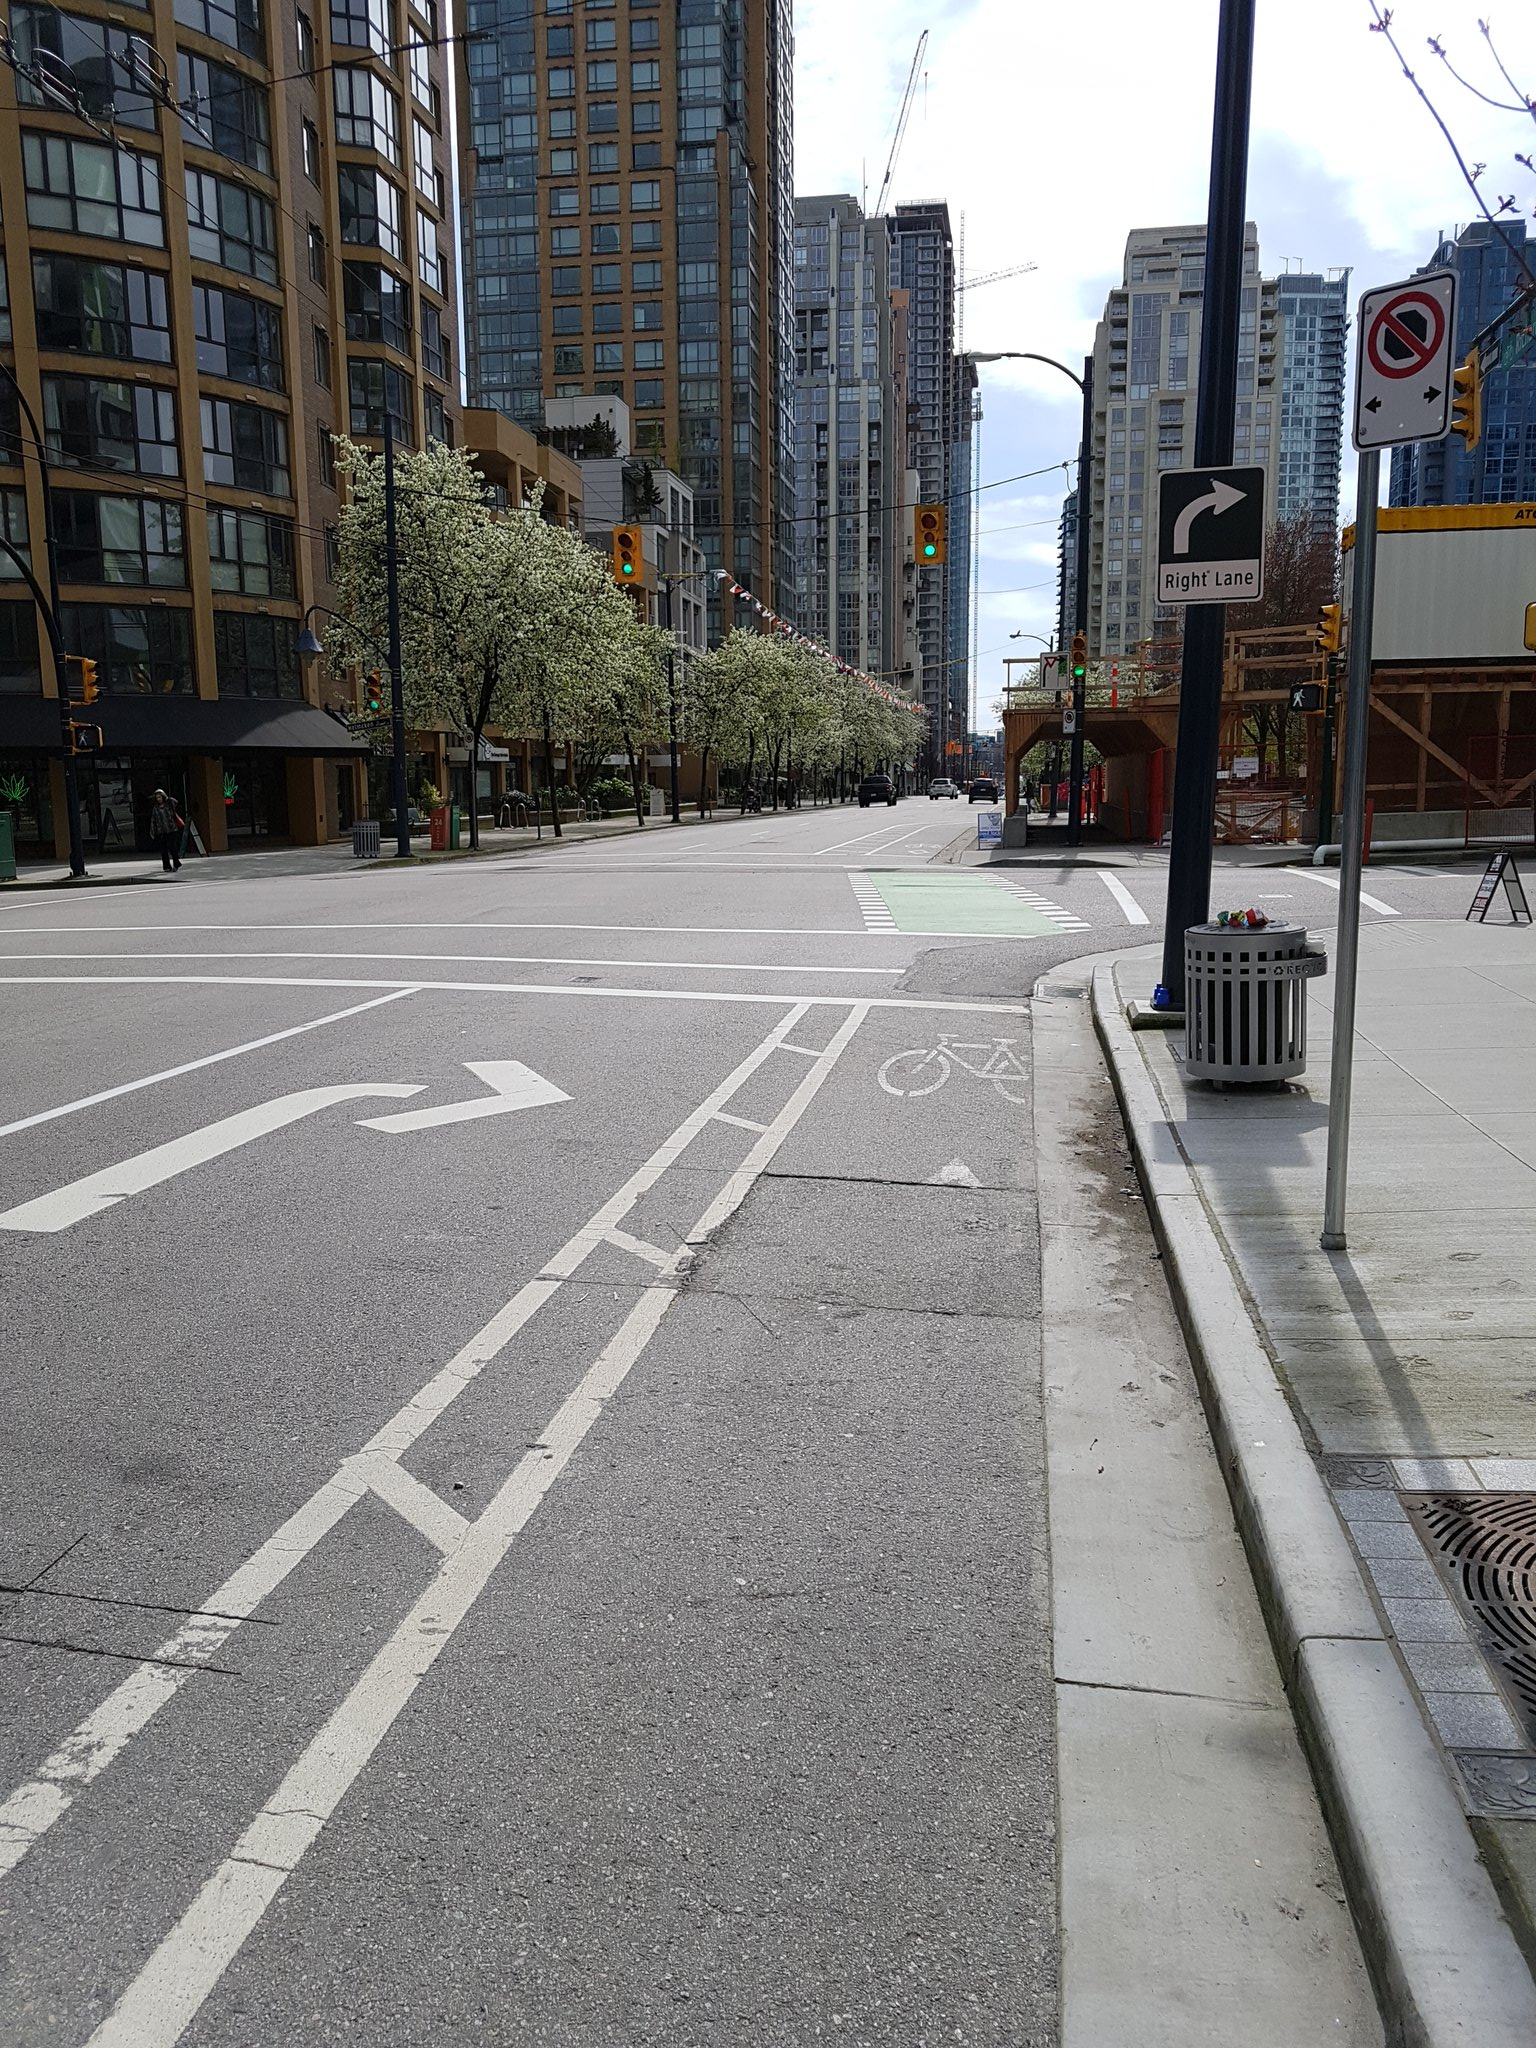 And one last tweet - Richards bike lane, which was inexpensively protected a few years ago by flipping the parking & the bike lane #yyjbike https://t.co/WWqq7S1XBQ